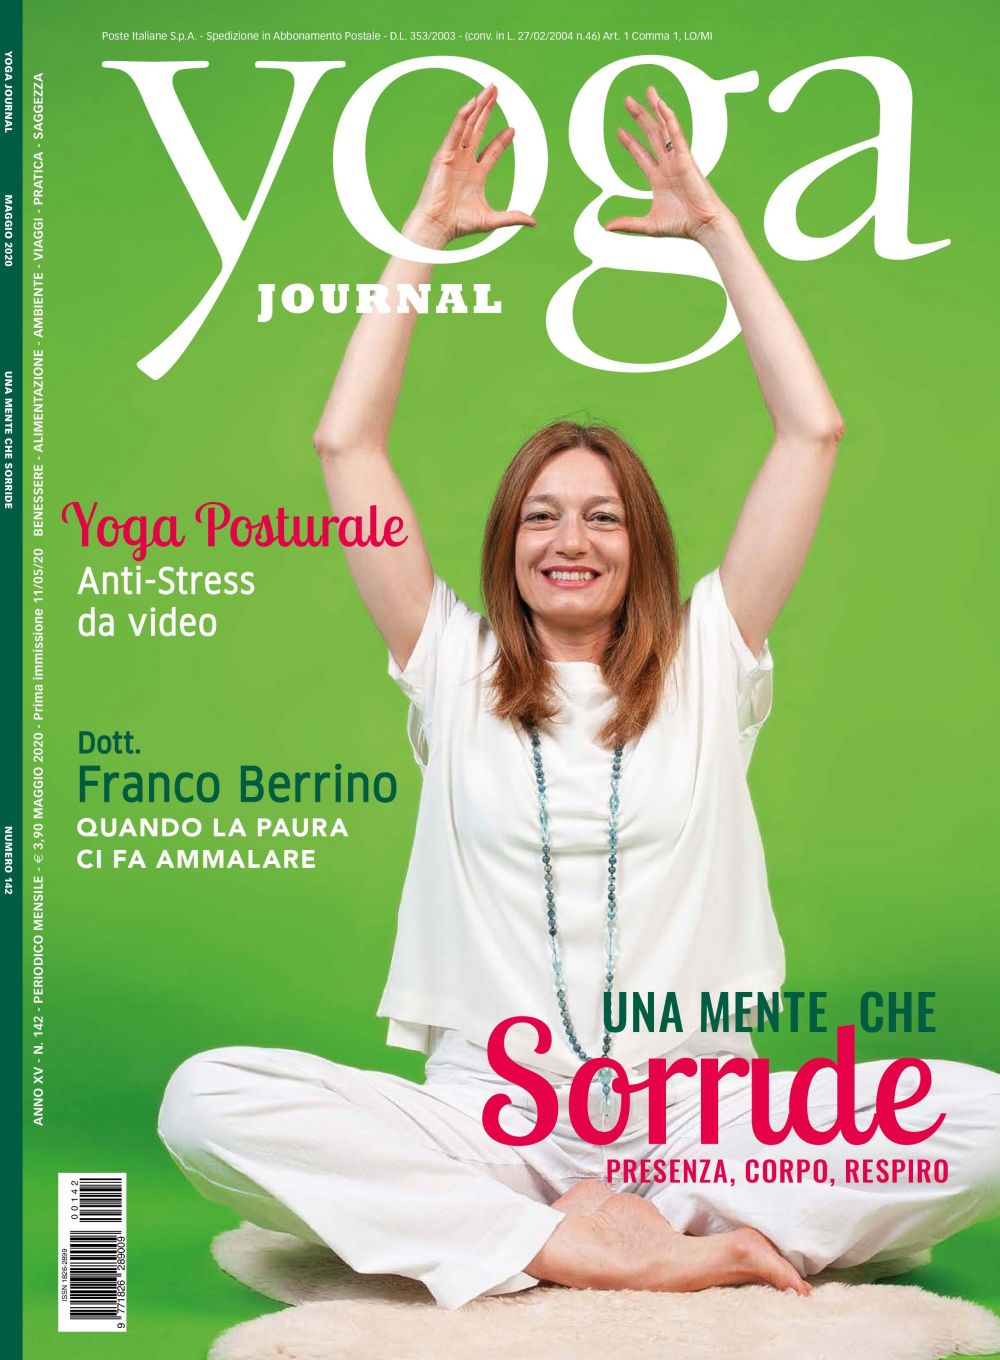 Yoga Journal Maggio n.142